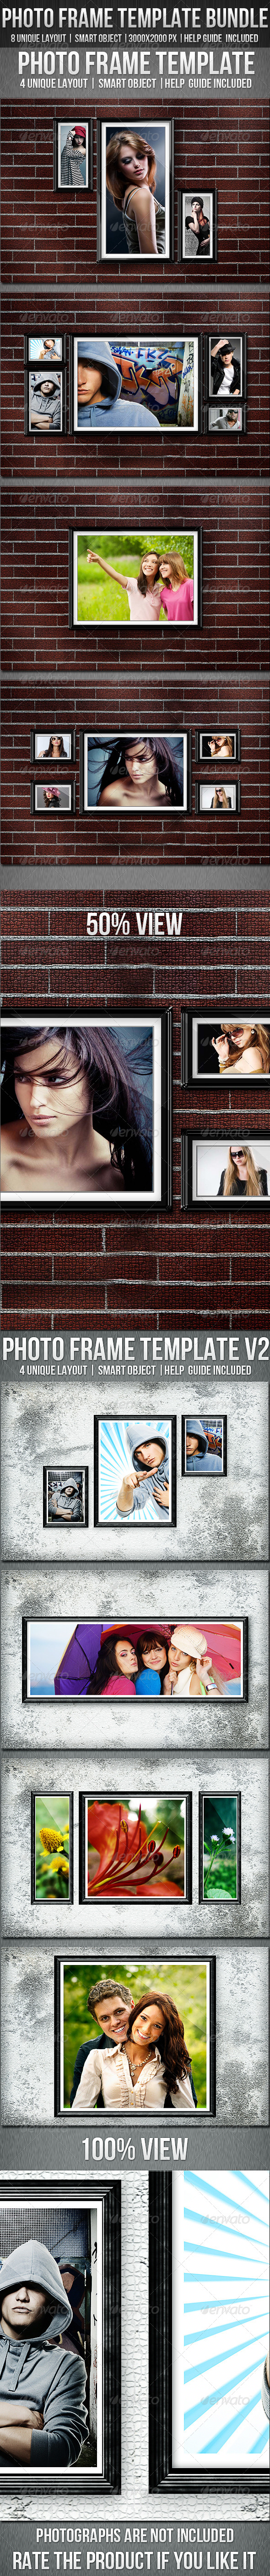 GraphicRiver Photo Frame Template Bundle 6910012